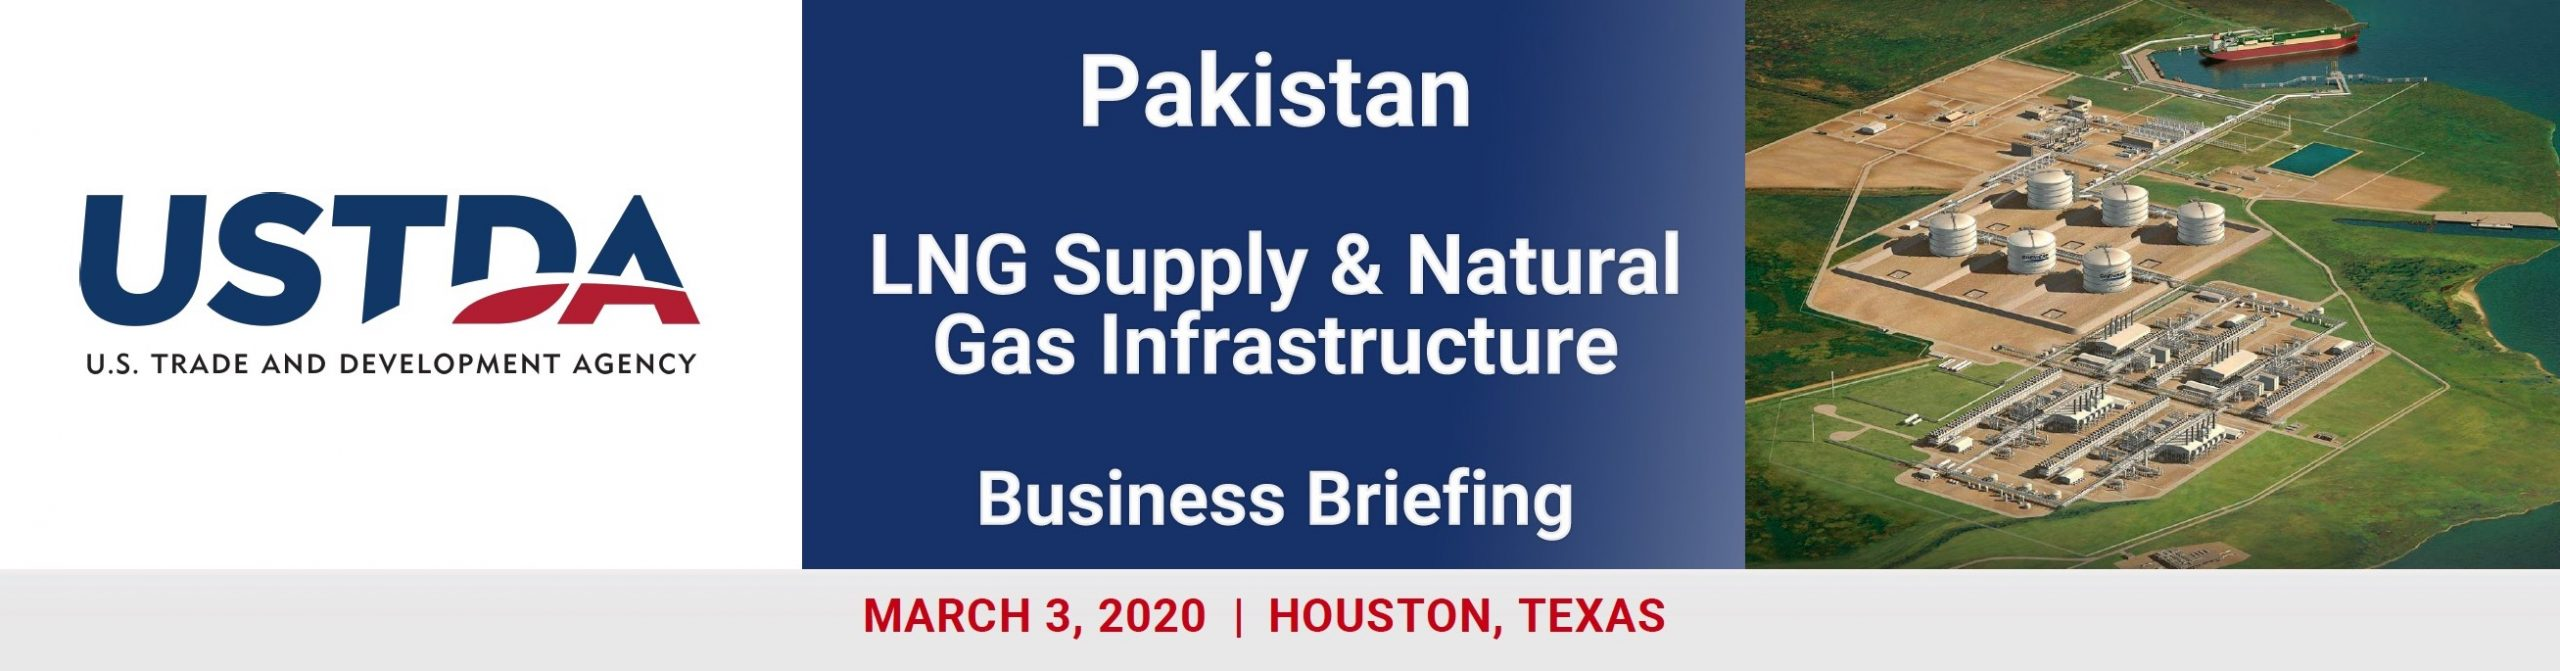 Pakistan LNG Supply and Natural Gas Infrastructure REVERSE TRADE MISSION AND BUSINESS BRIEFING MARCH 1 – 13, 2020 ▪︎ HOUSTON, TEXAS & WASHINGTON, D.C.